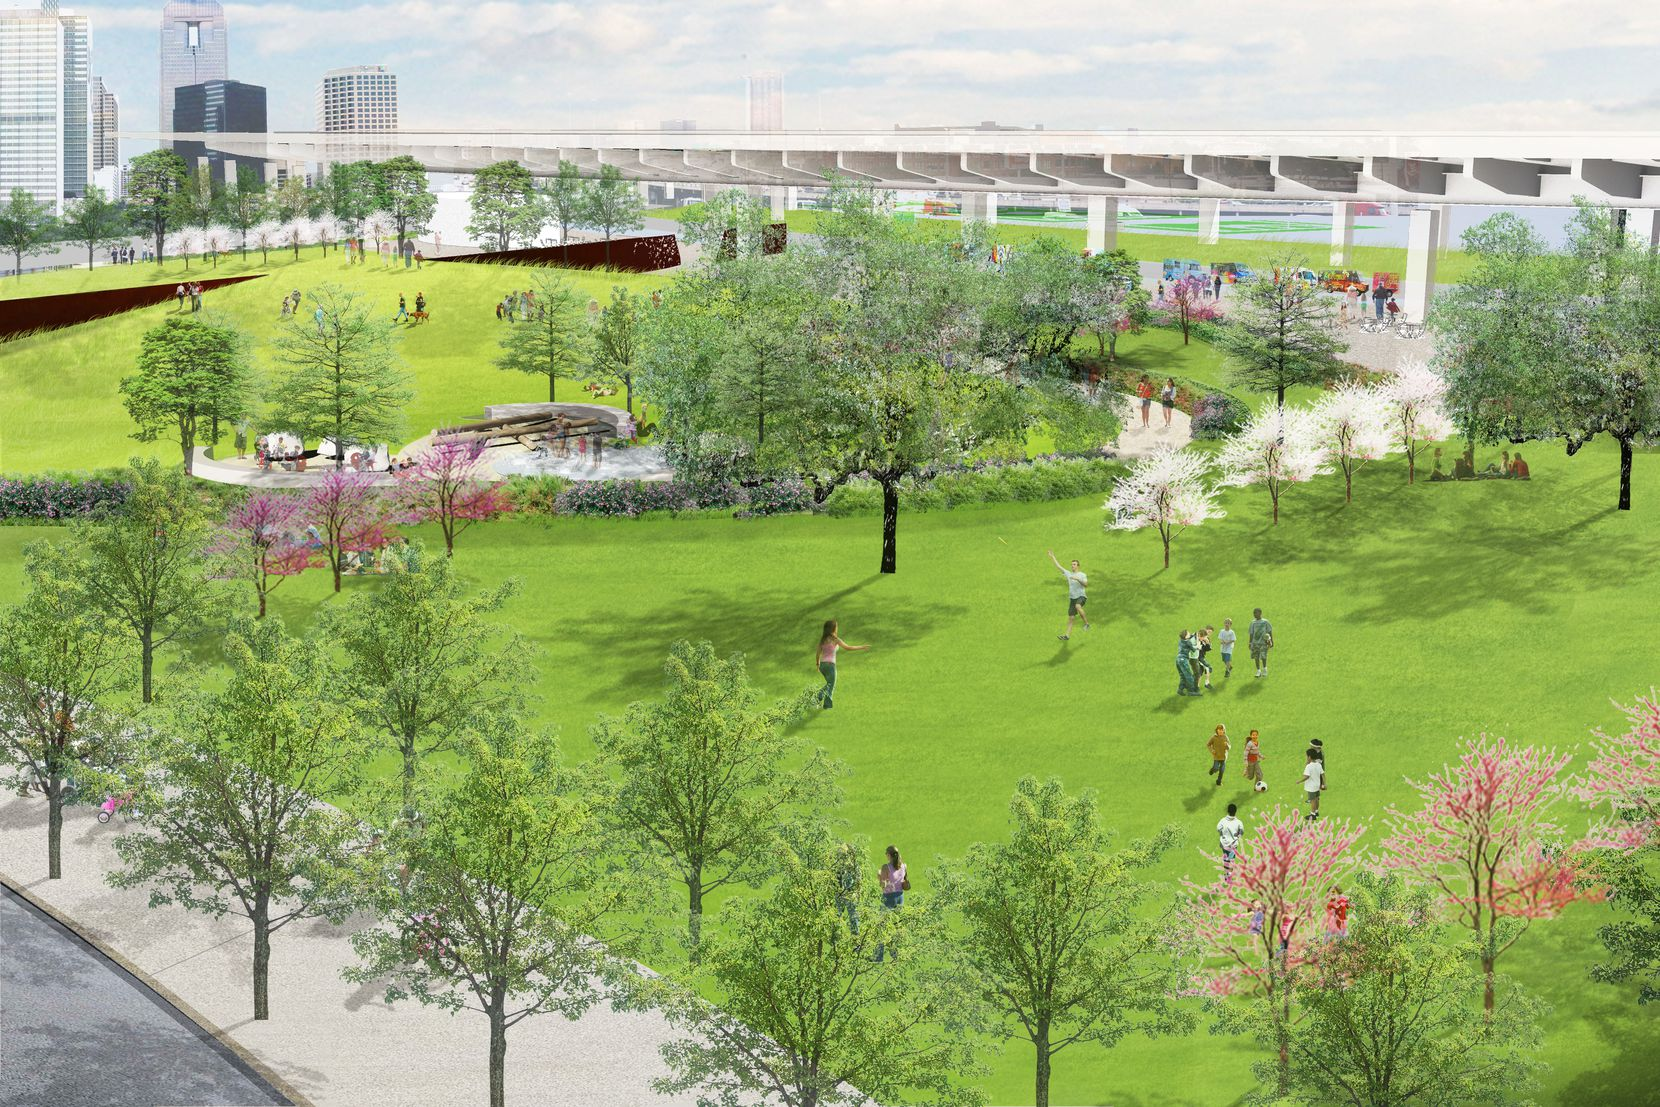 This rendering by landscape architect Hargreaves Jones shows the lawn area of Carpenter Park and looks east toward I-345. As seen in the left side of the rendering, the Portal Park Piece artwork will be reinstalled to run east-west, symbolizing the connection between downtown and its east-side neighborhoods.